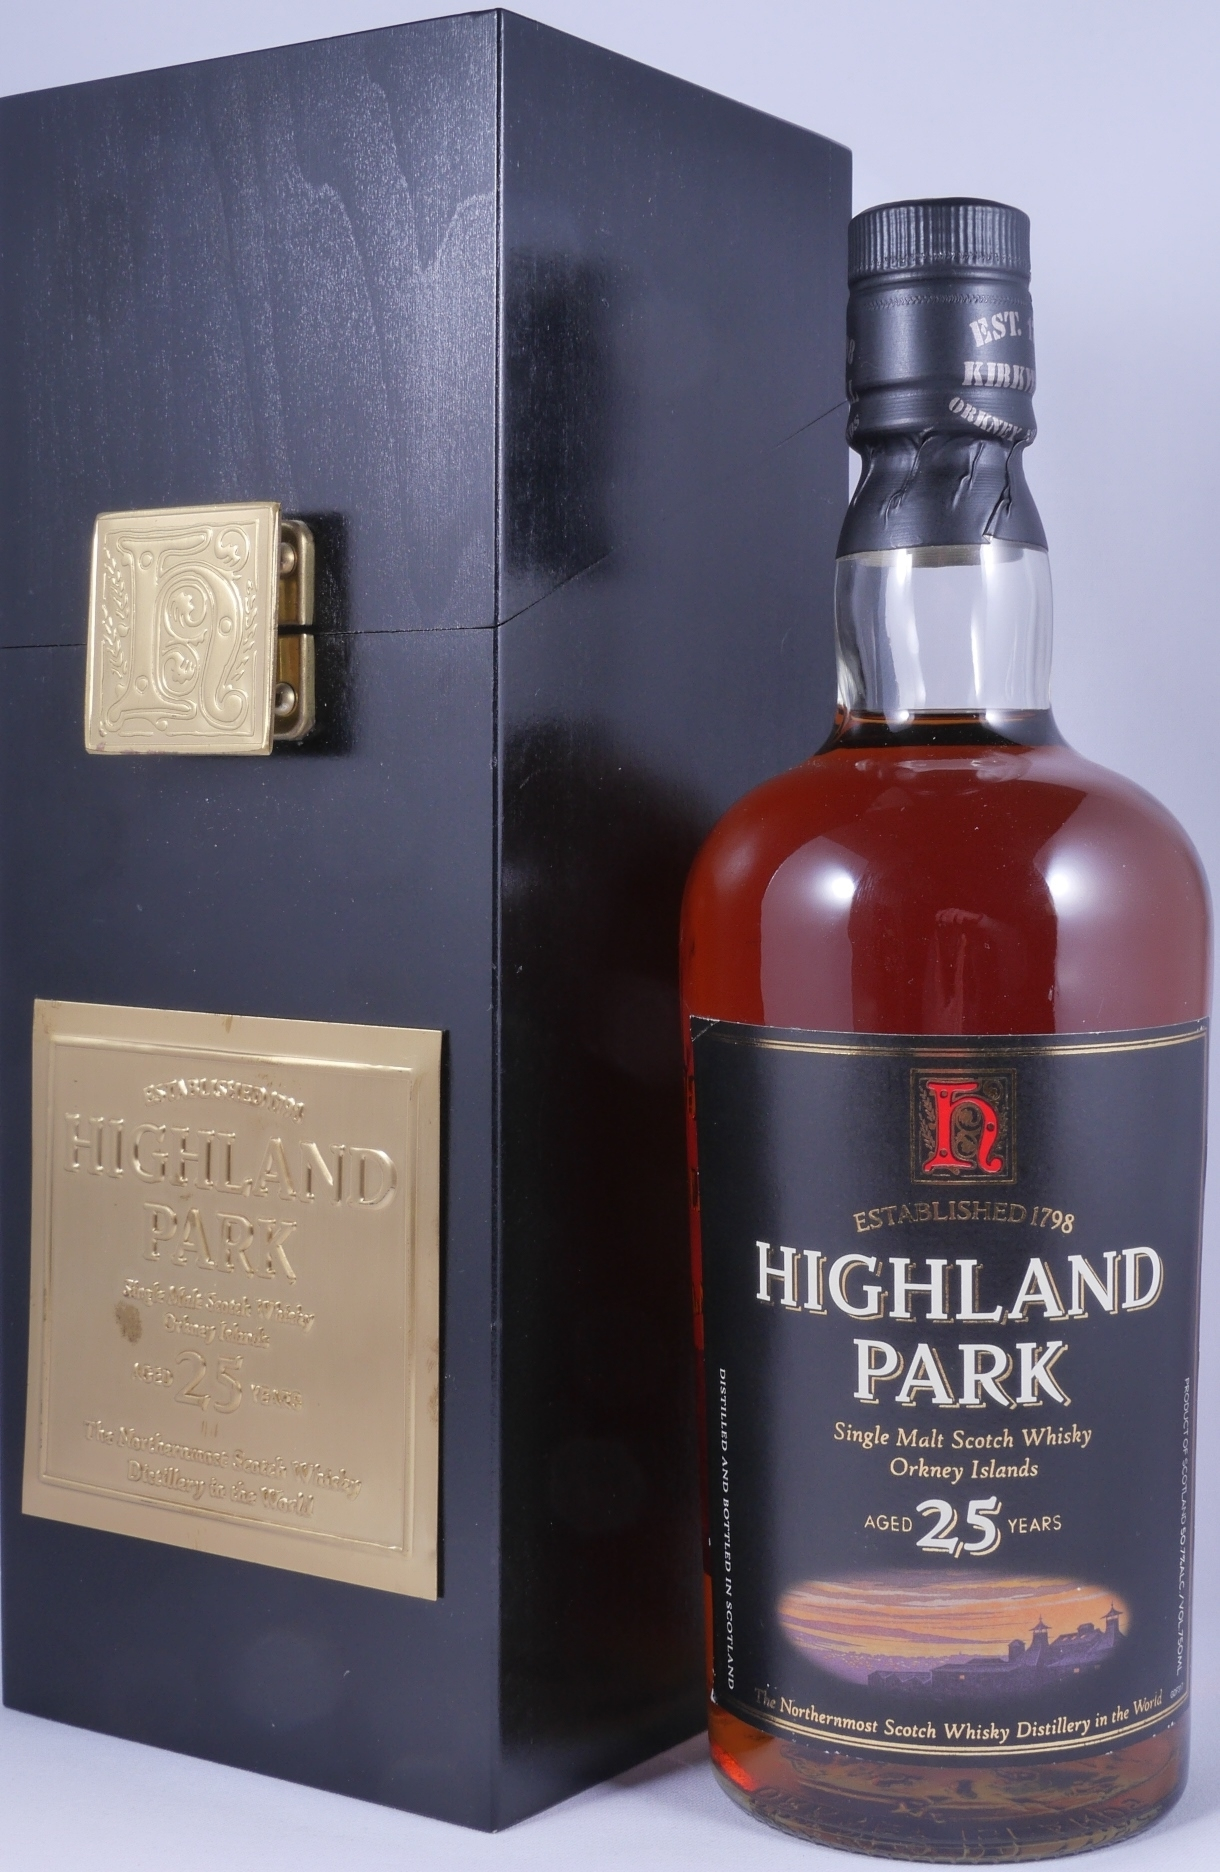 521d4f547f8 Highland Park 25 Years Release 2004 Sherry Cask Single Malt Scotch Whisky  for Remy Amerique New